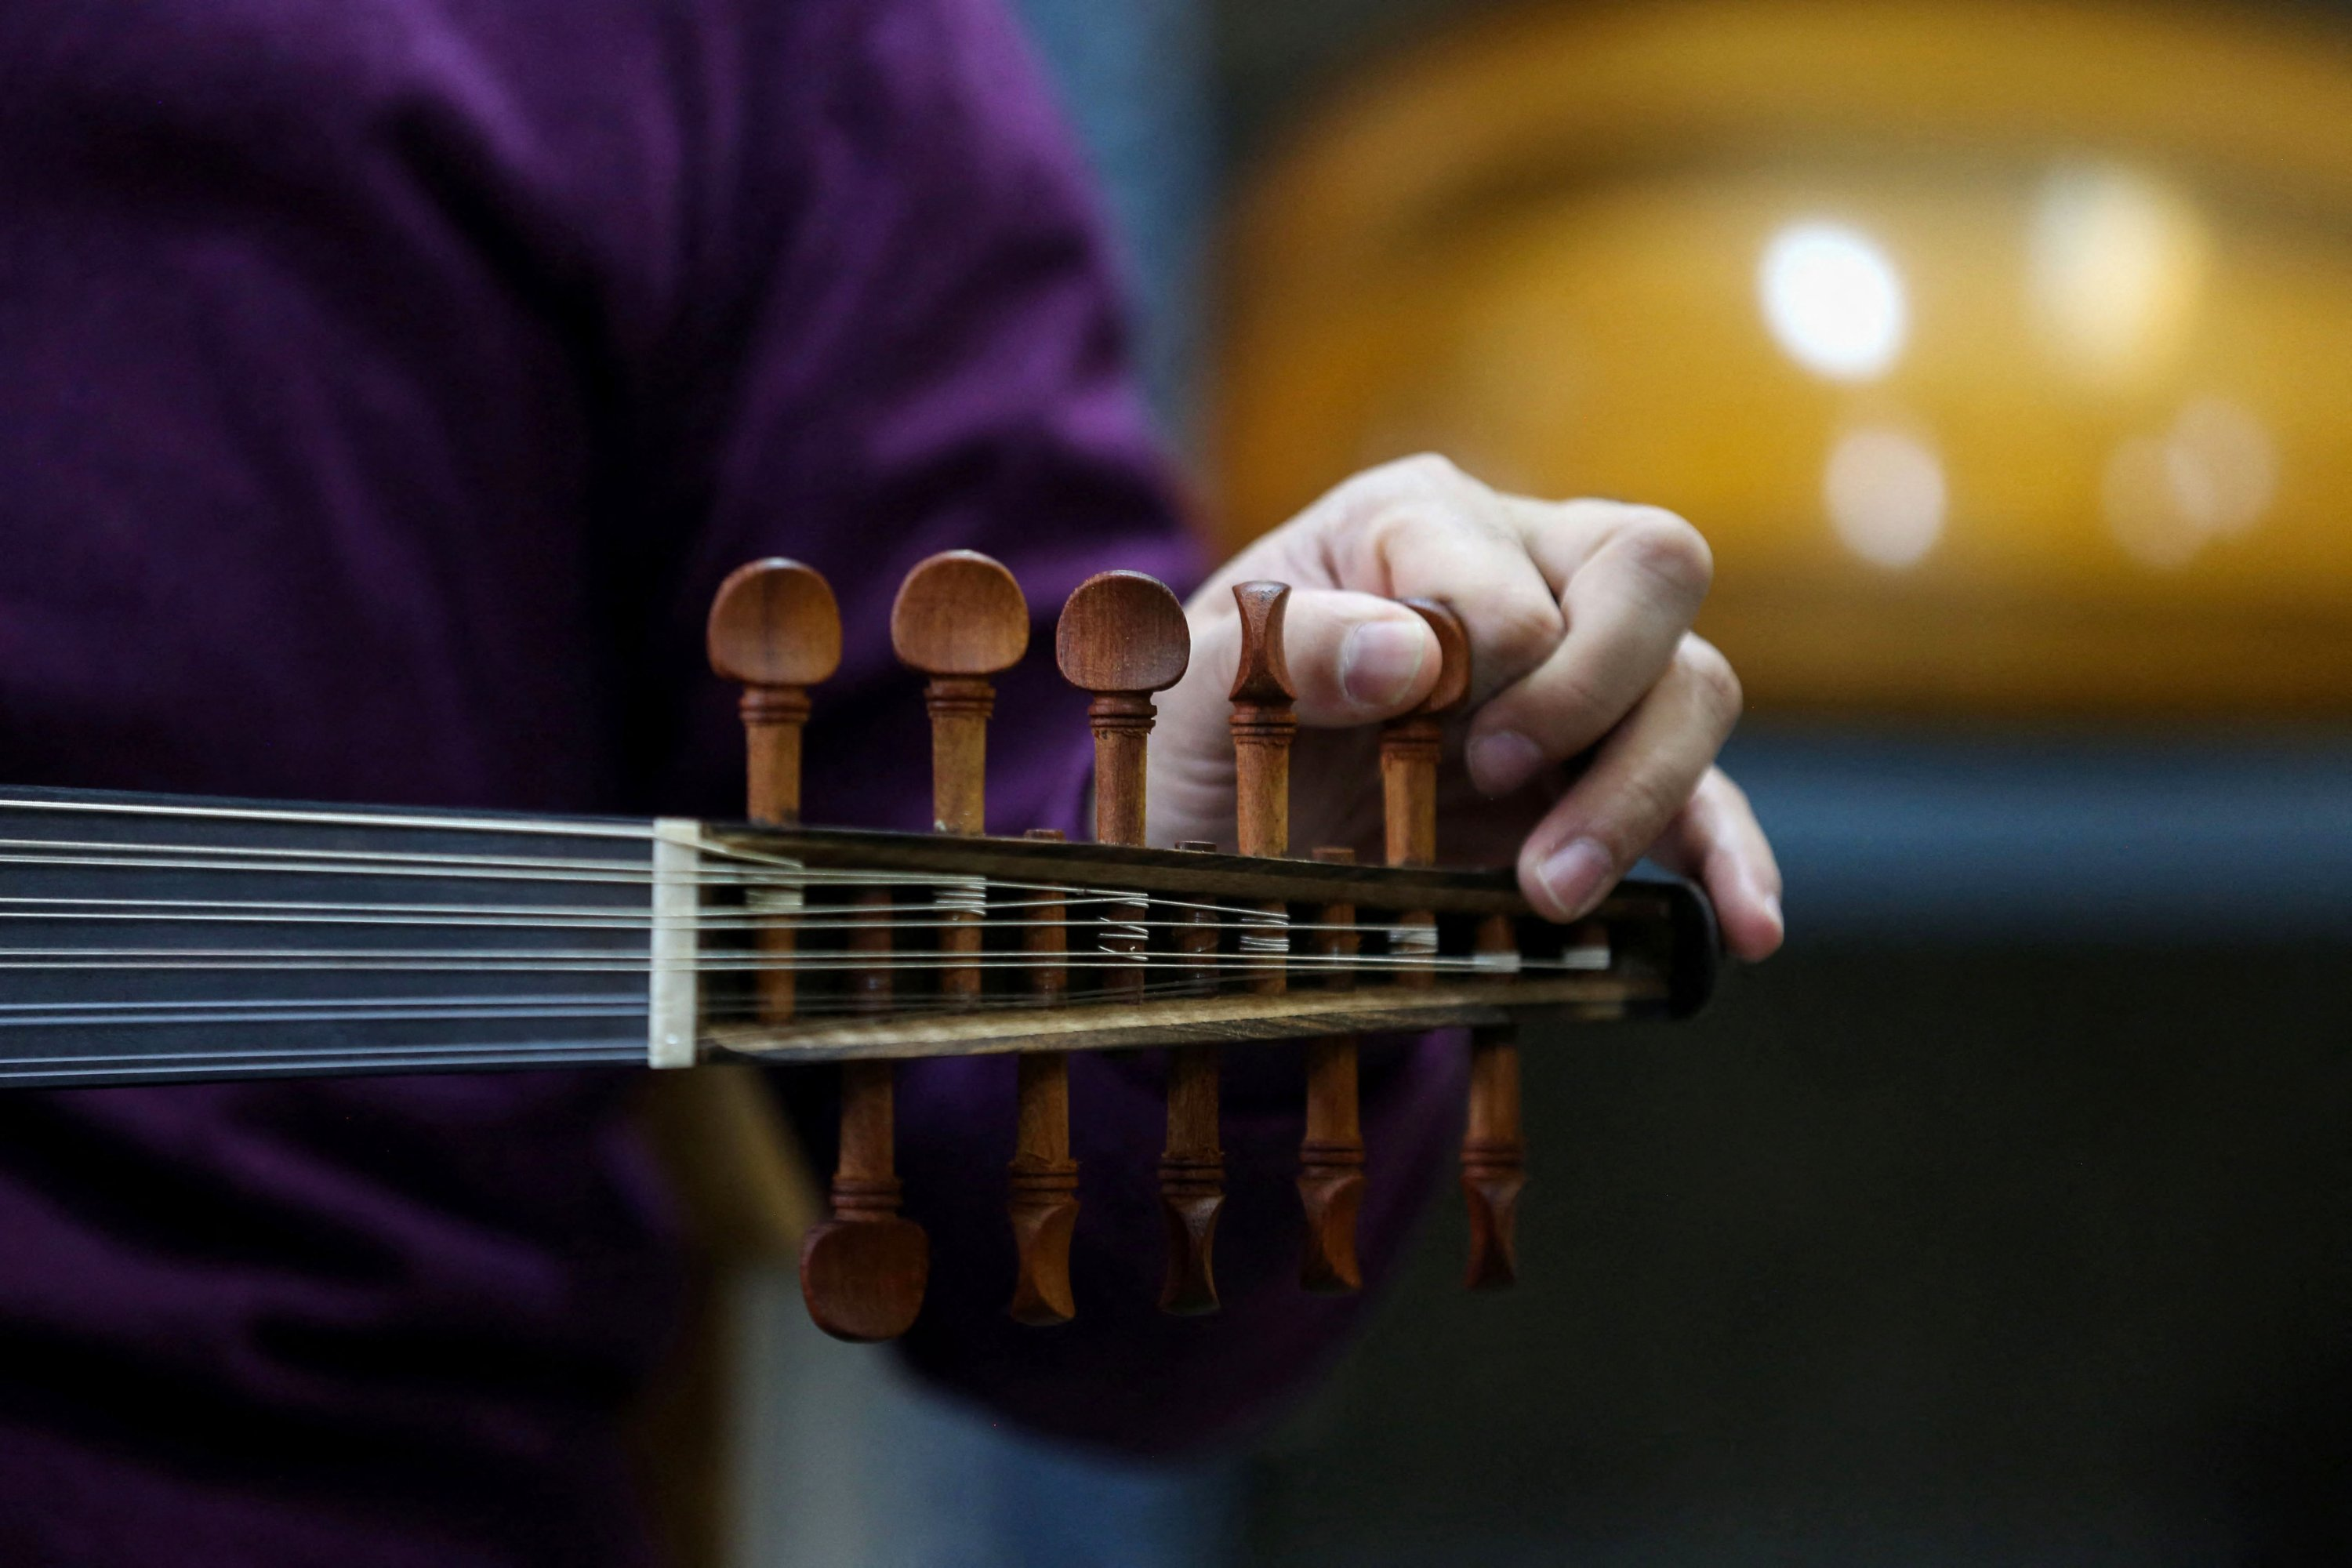 Iranian master player and instructor Hamid Khansari tests a new instrument at luthier Fatemeh Moussavi's (unseen) oud-making workshop in the capital Tehran, Iran, Dec. 14, 2020. (AFP Photo)